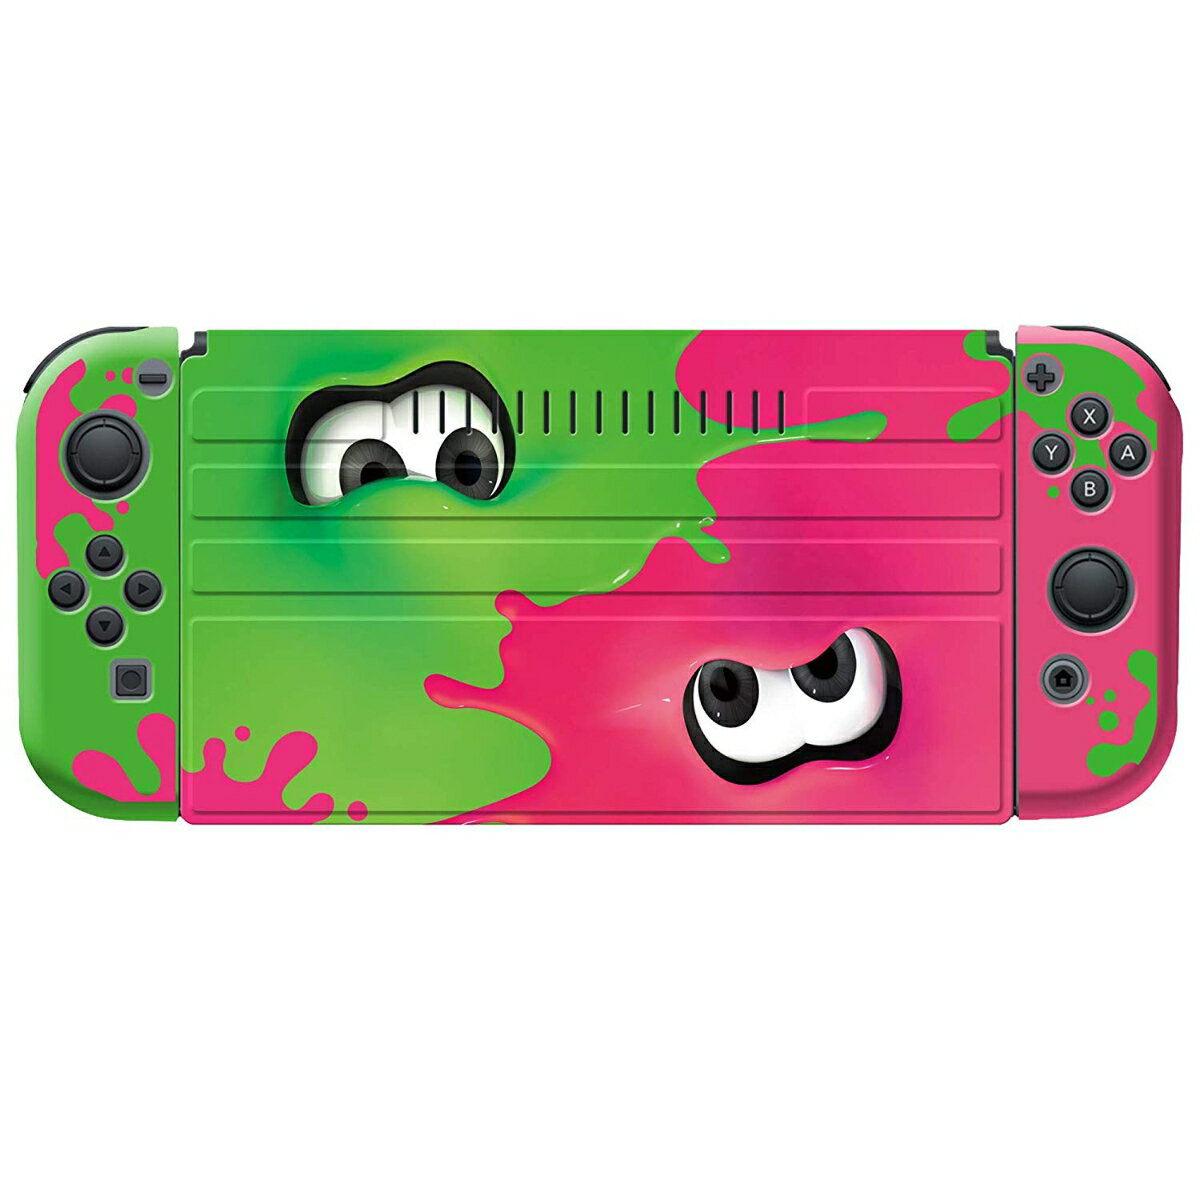 きせかえセット COLLECTION for Nintendo Switch Splatoon2